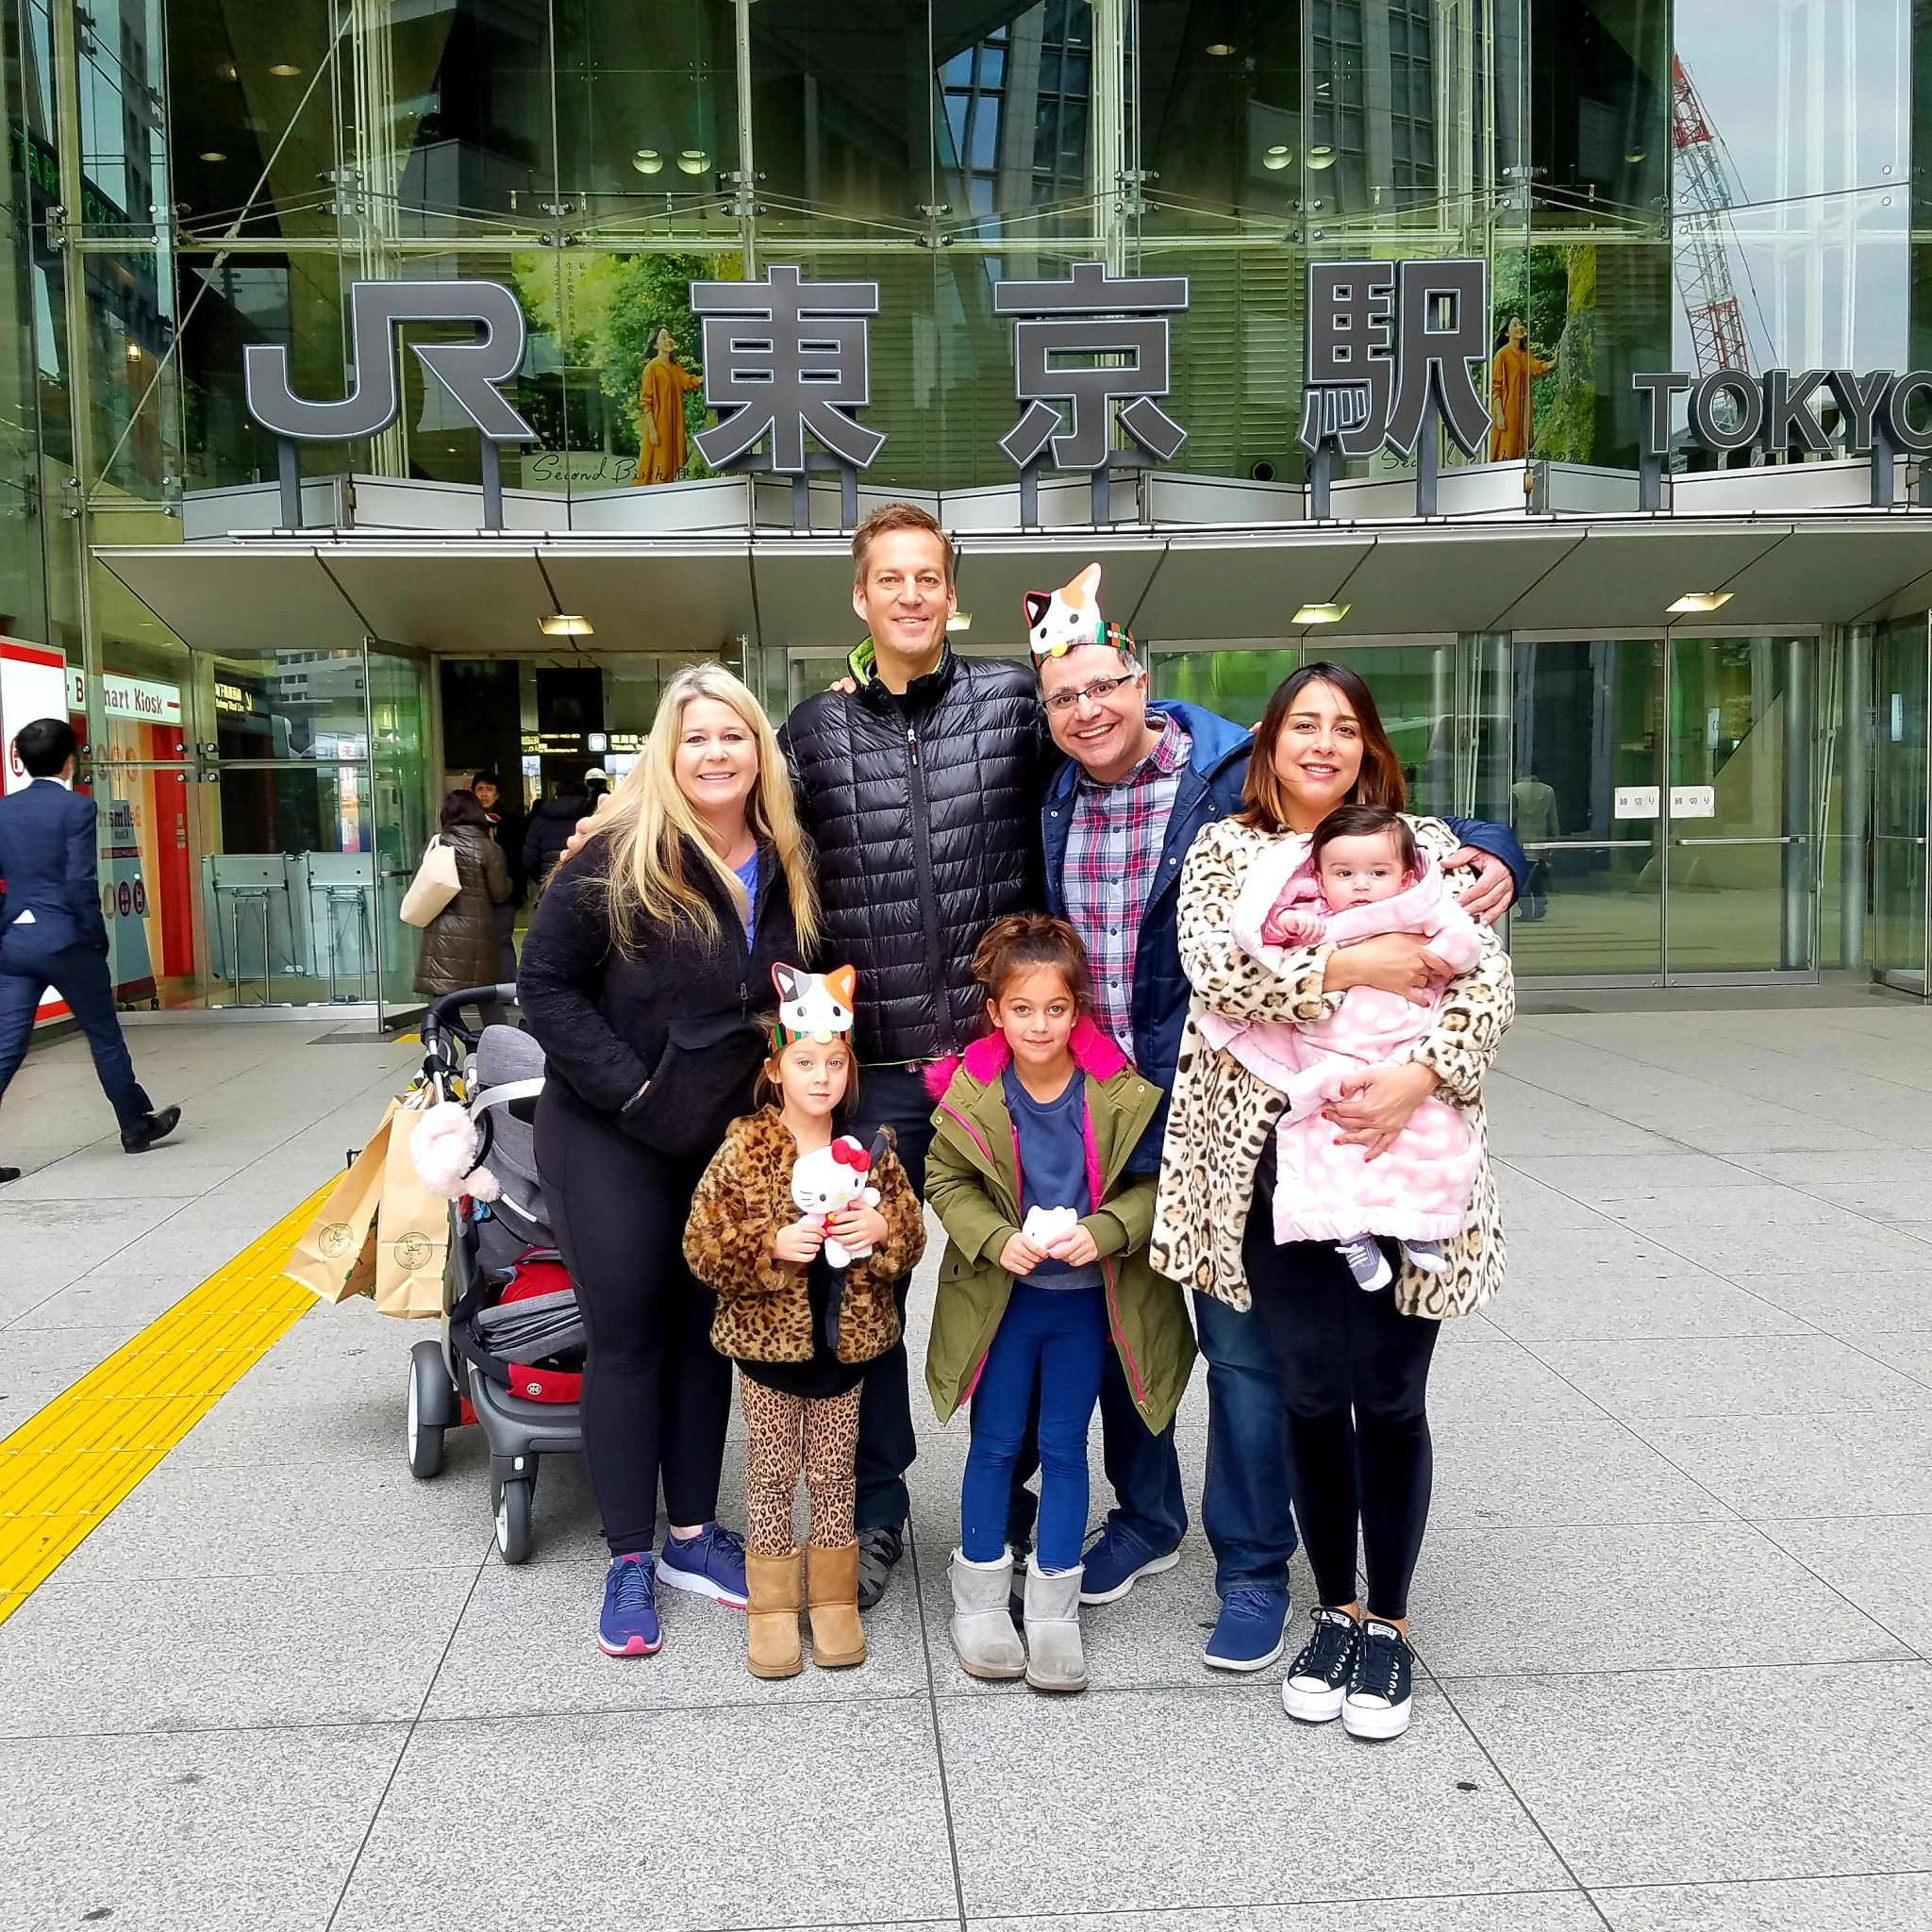 Mac, Founder and Lead Guide of Maction Planet, with the Baker Family outside Tokyo Station